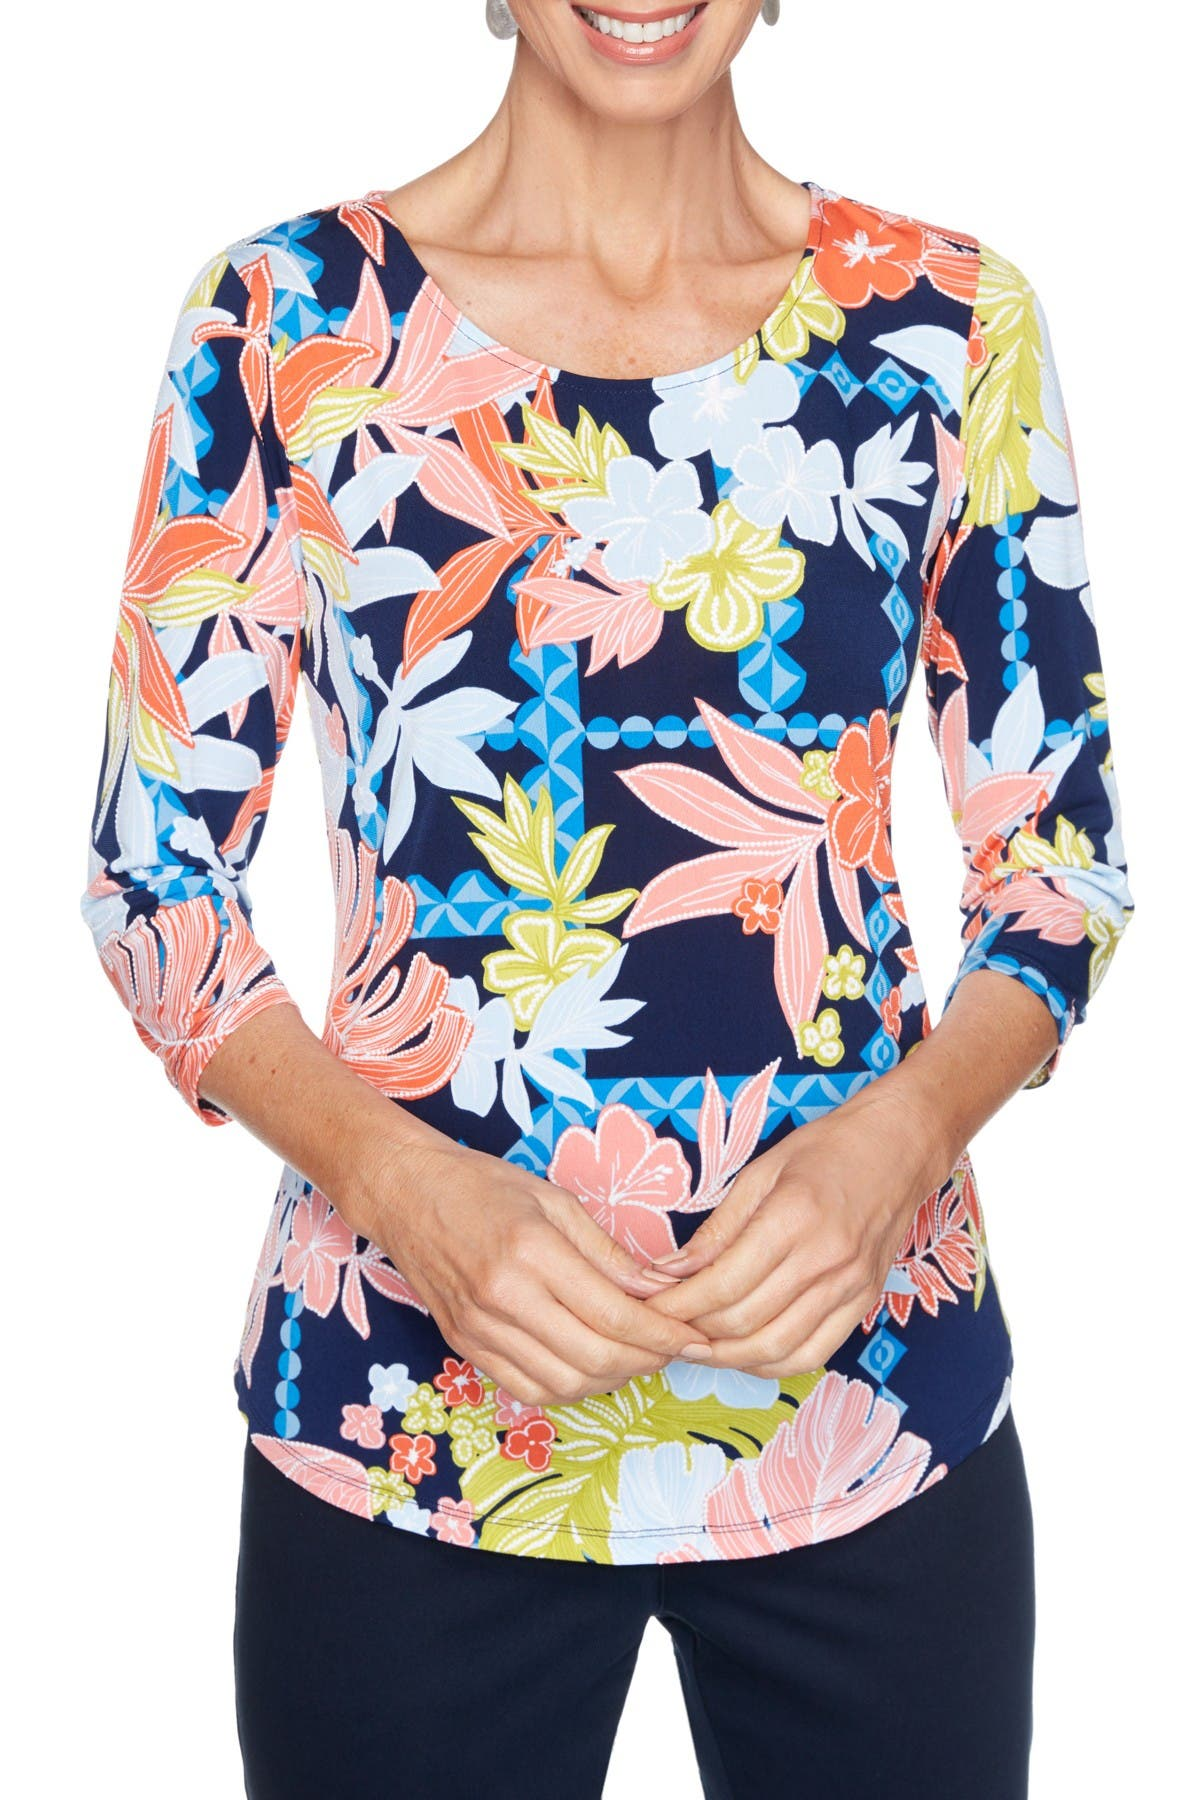 Ruby Rd. Tops BOLD FLORAL TEXTURED PUFF PRINTED TOP